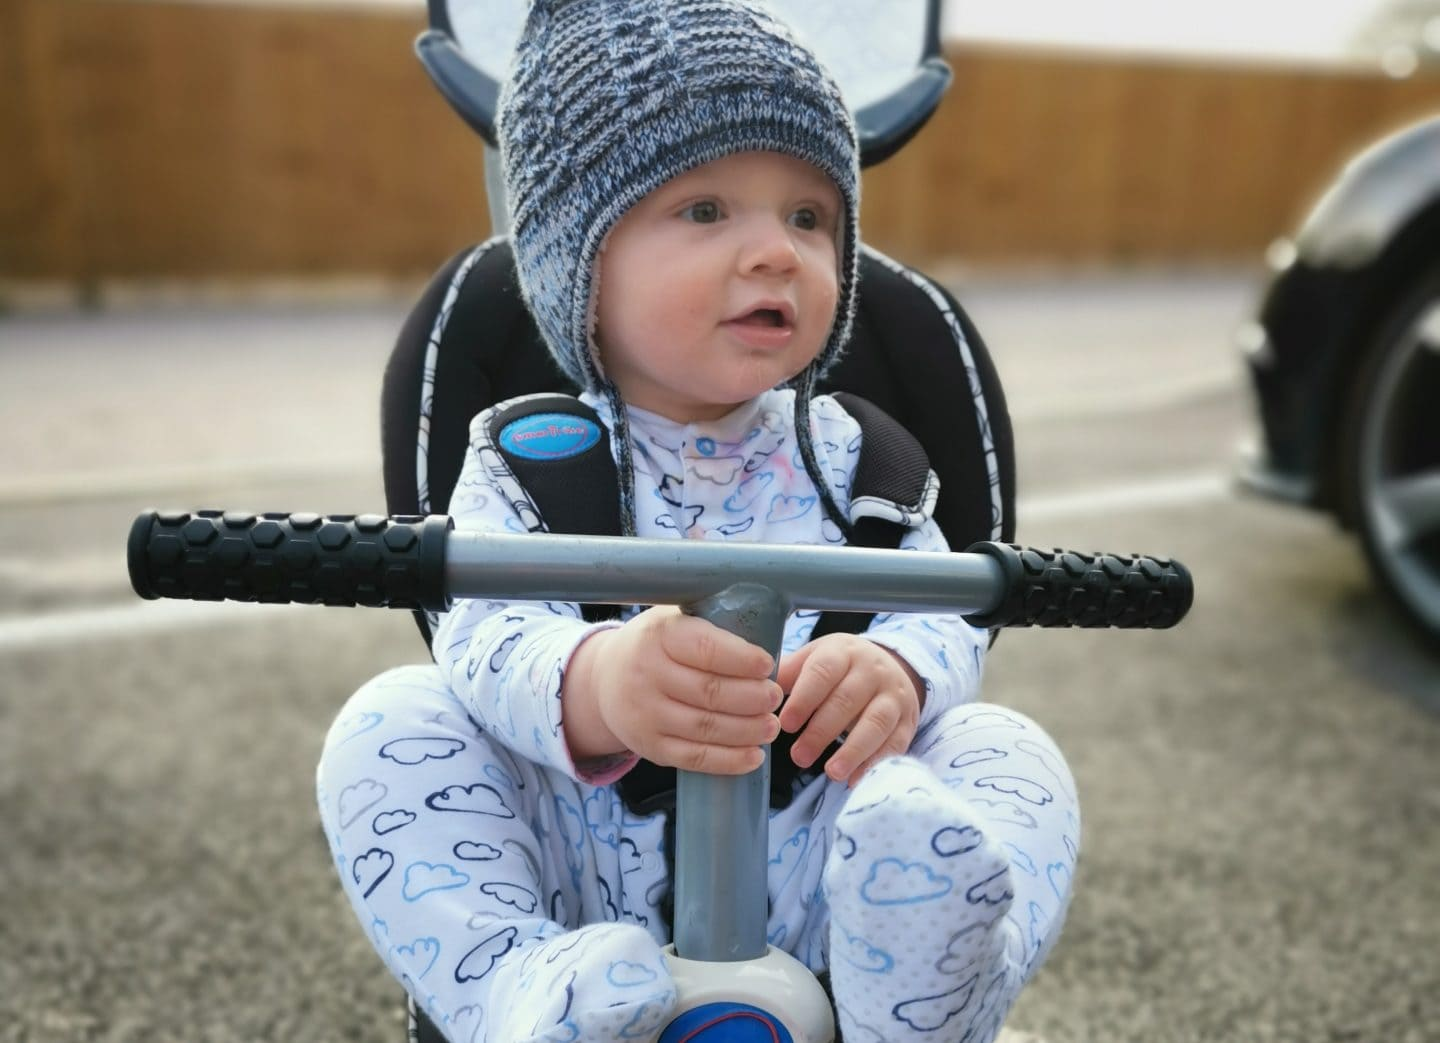 Baby on a Trike